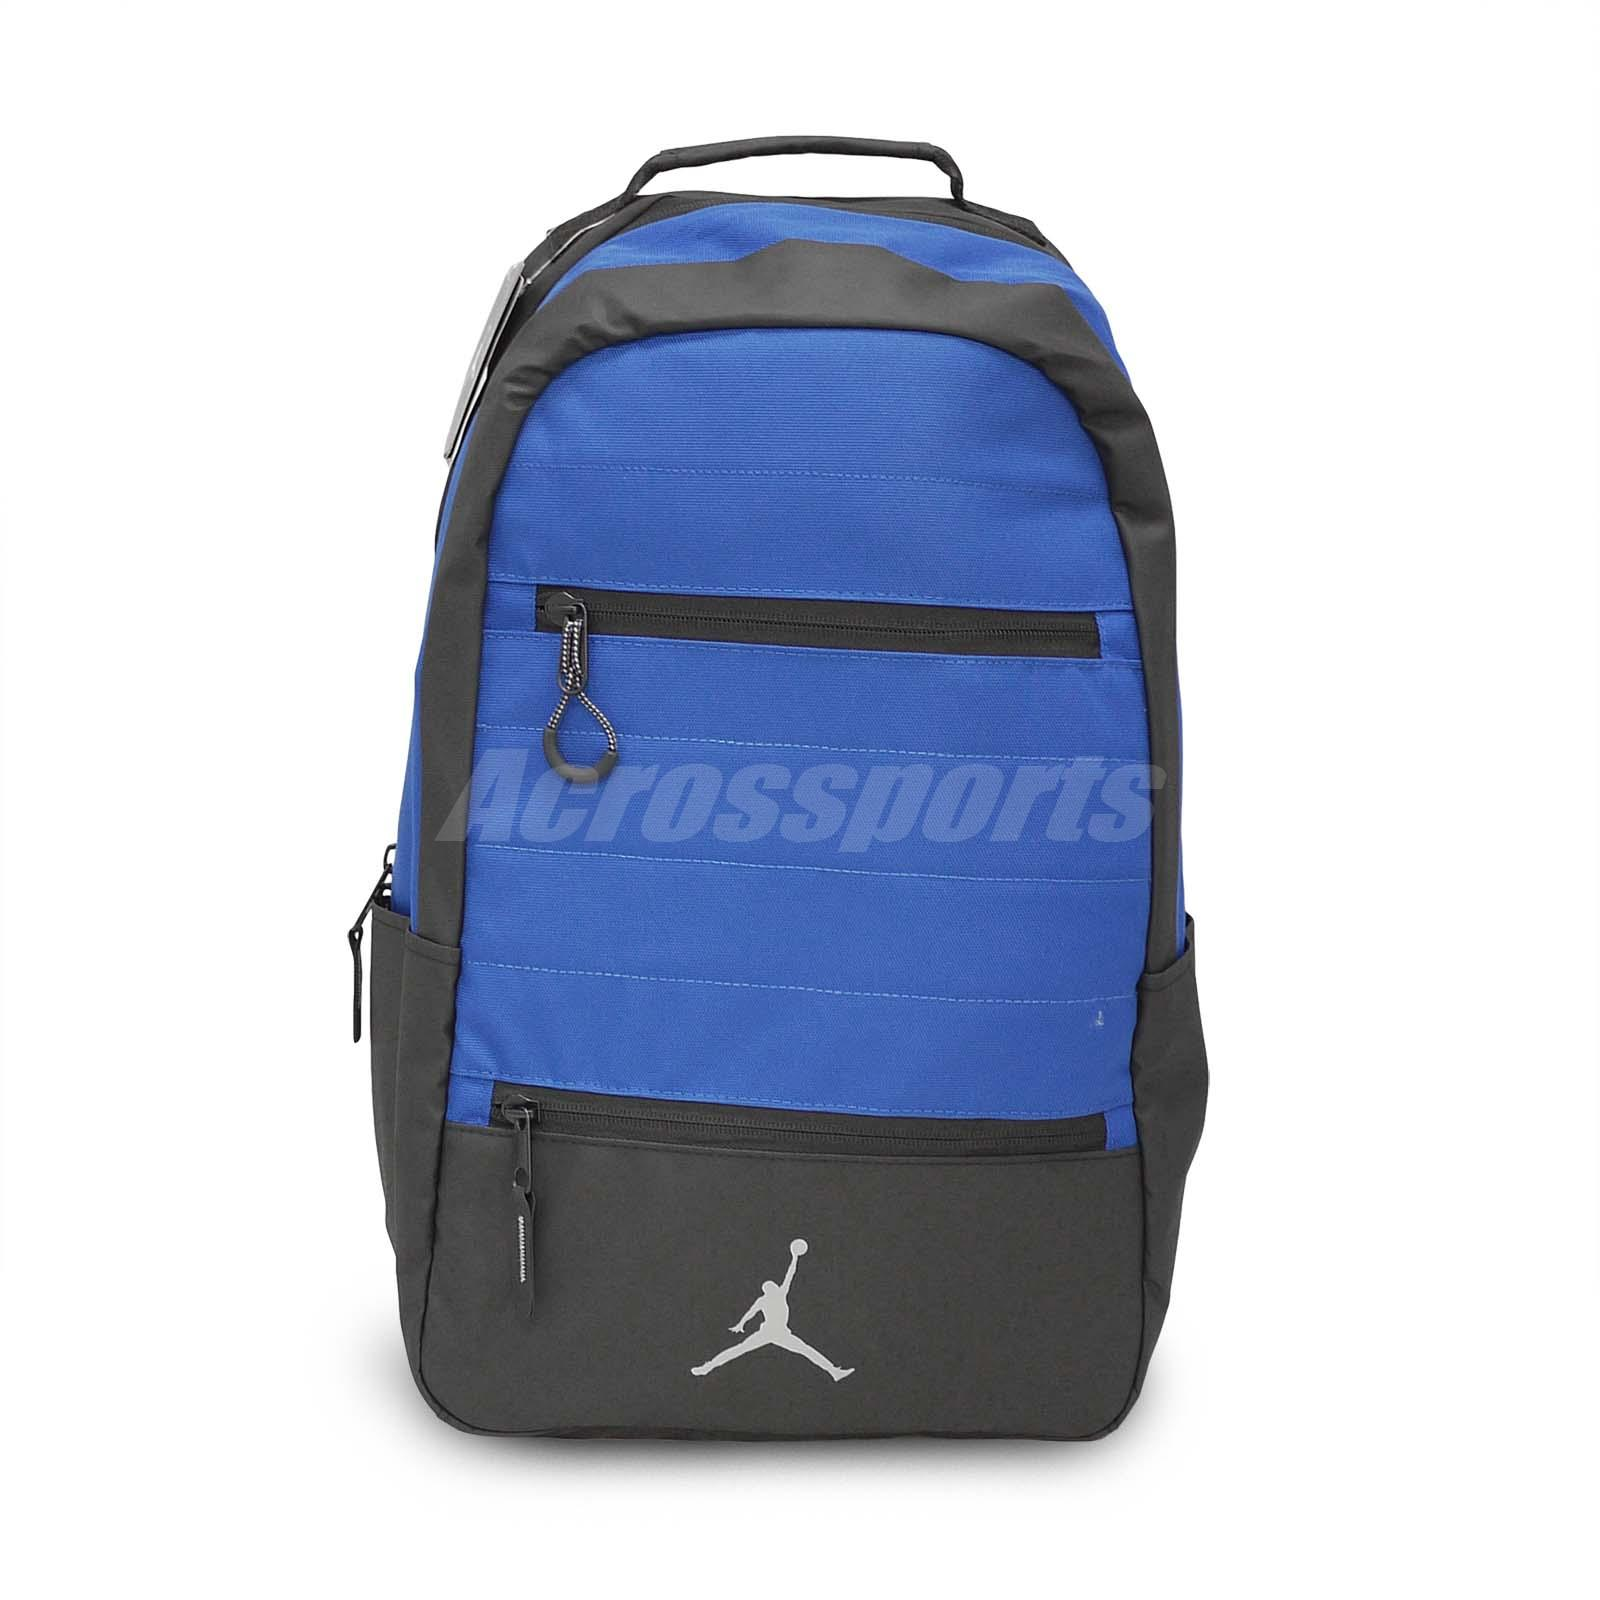 dcbc57987630 Details about Nike Jordan Airborne Pack Blue Black Laptop Water Resistan  Backpack 9A1944-U1X